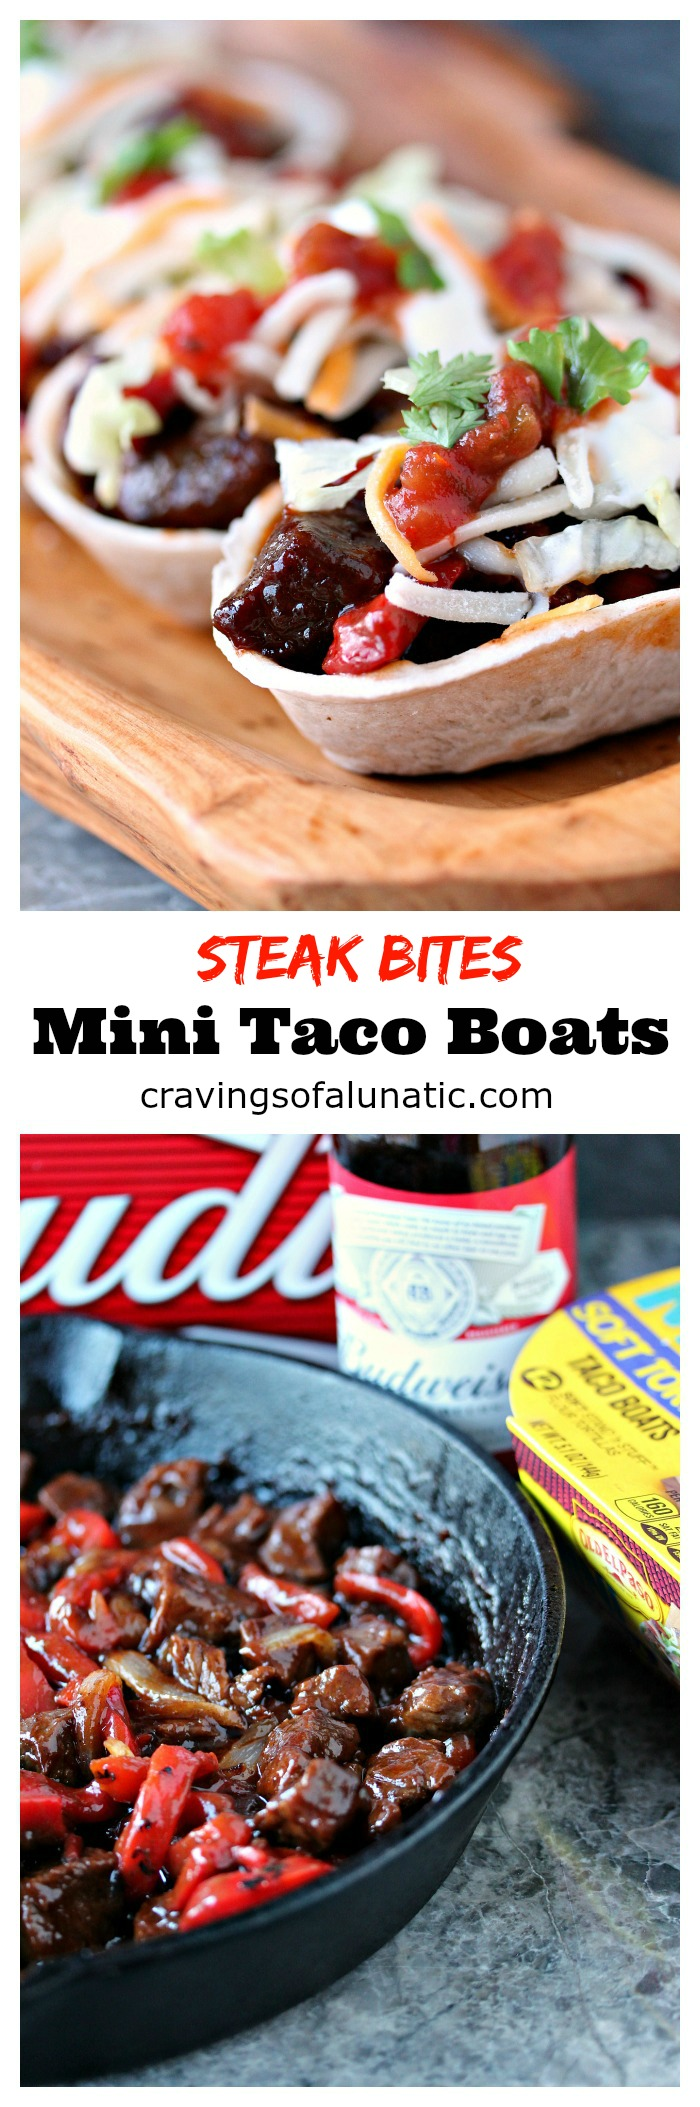 Steak Bites Mini Taco Boats from cravingsofalunatic.com- This taco recipe uses steak marinated in beer, then cooked to perfection in a cast iron skillet, and topped with Barbecue Sauce. It's Tex-Mex in mini form. Every bite is full of flavour. (@CravingsLunatic)